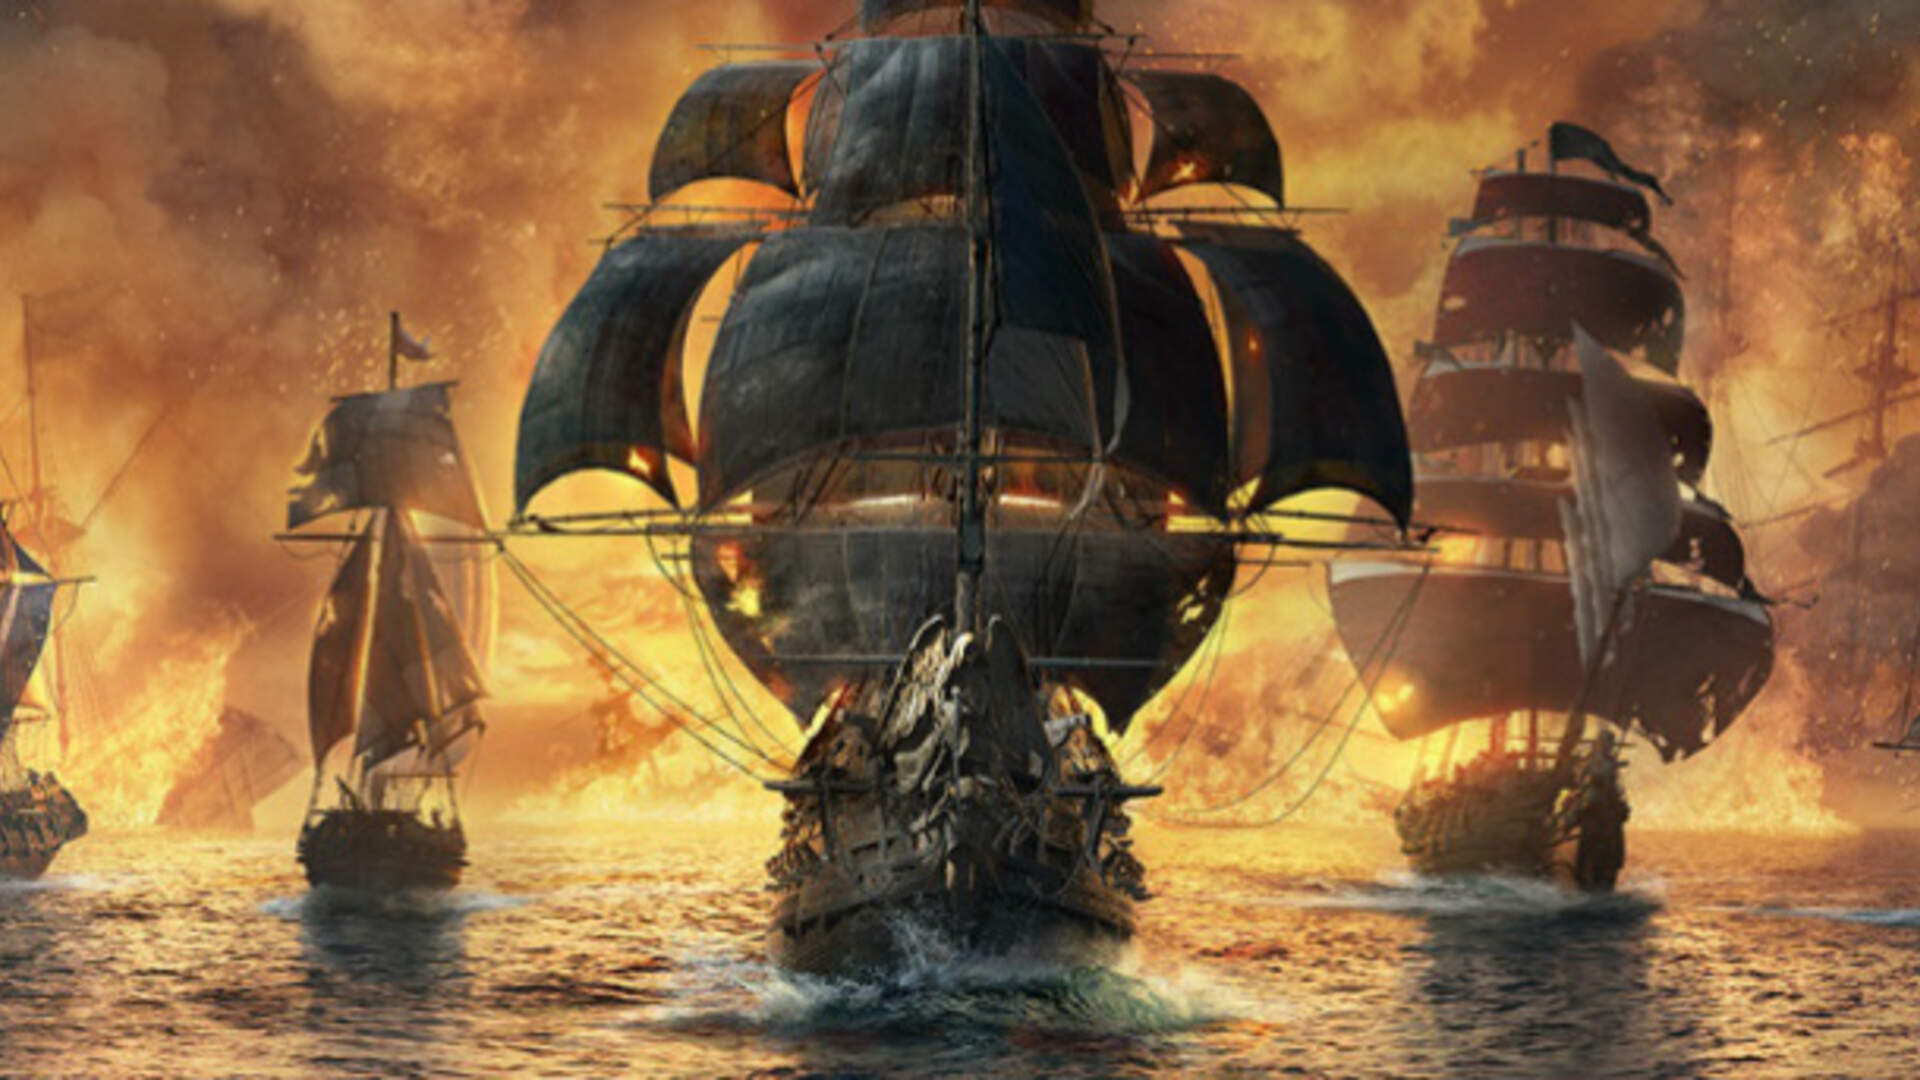 Ubisoft Delays Its Ship Combat Game, Skull and Bones, to Fiscal Year 2020